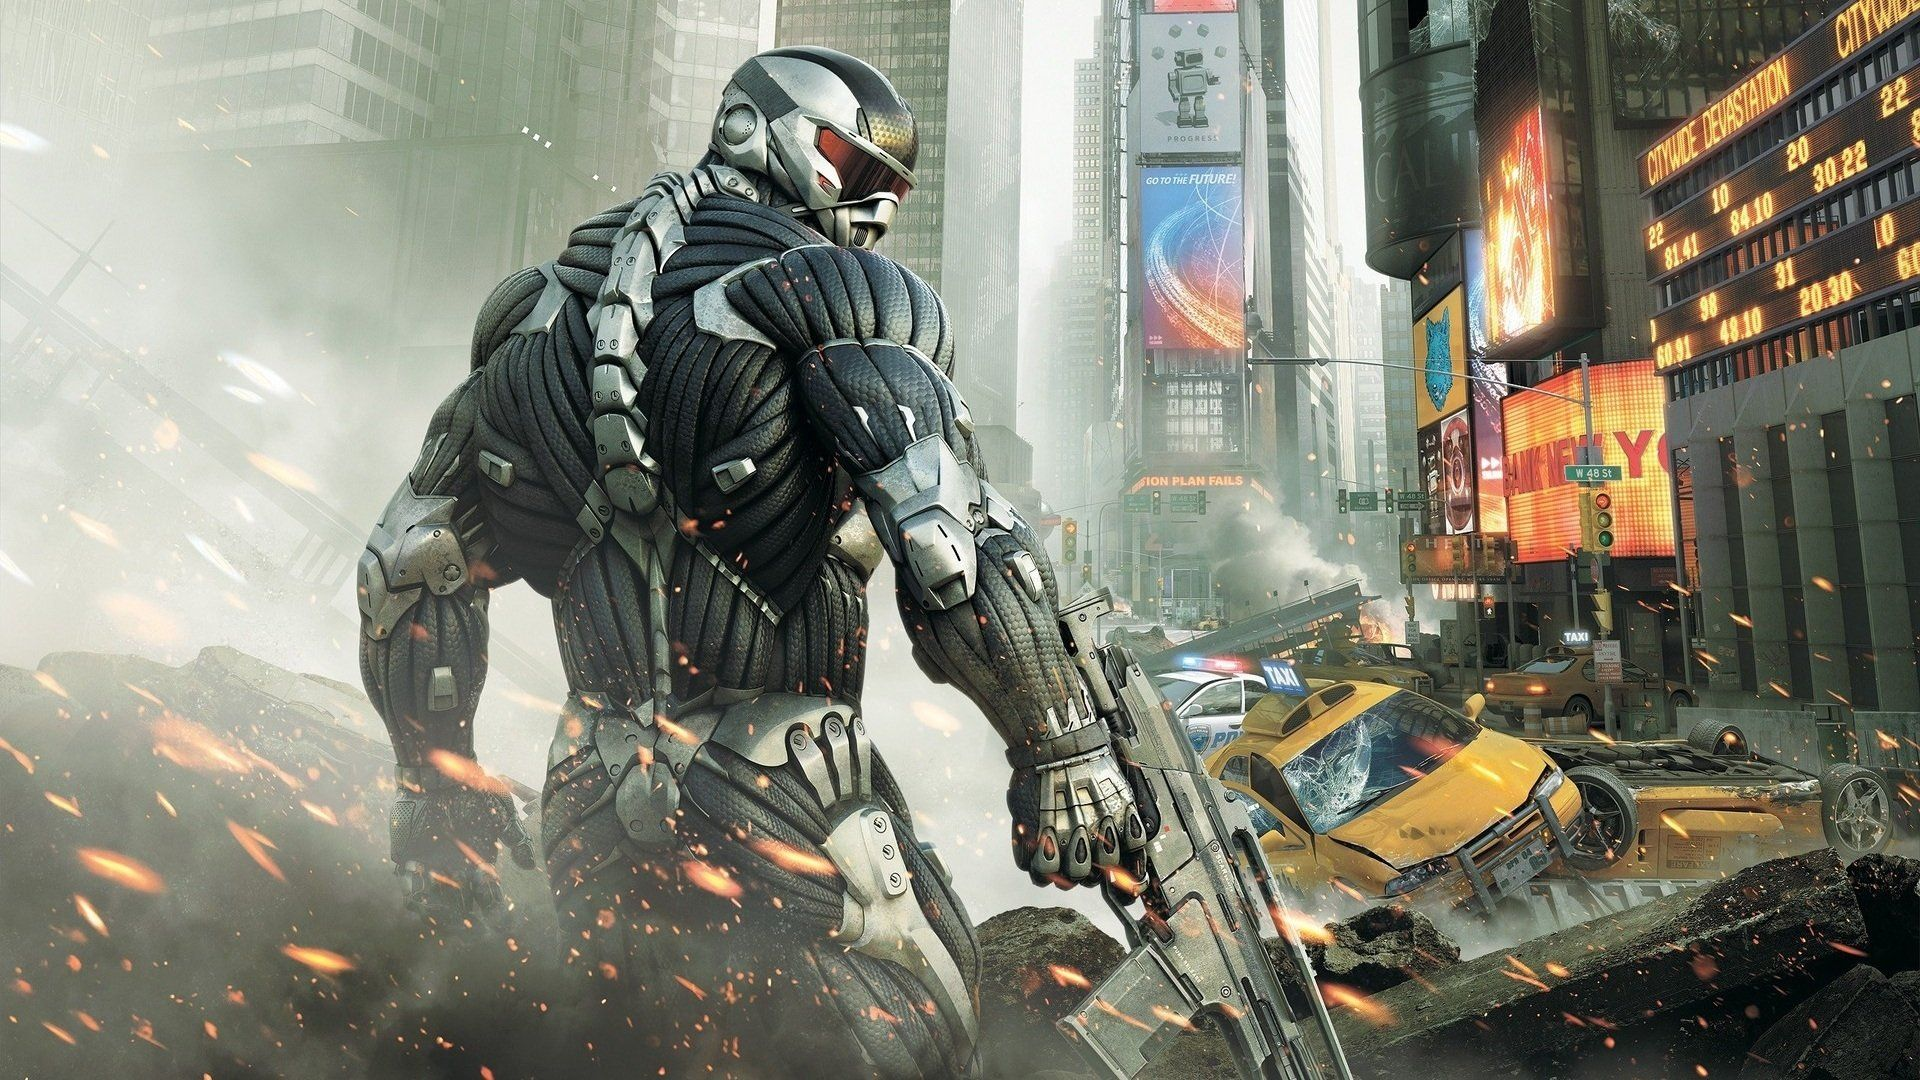 Pictures From The Game Crysis 2